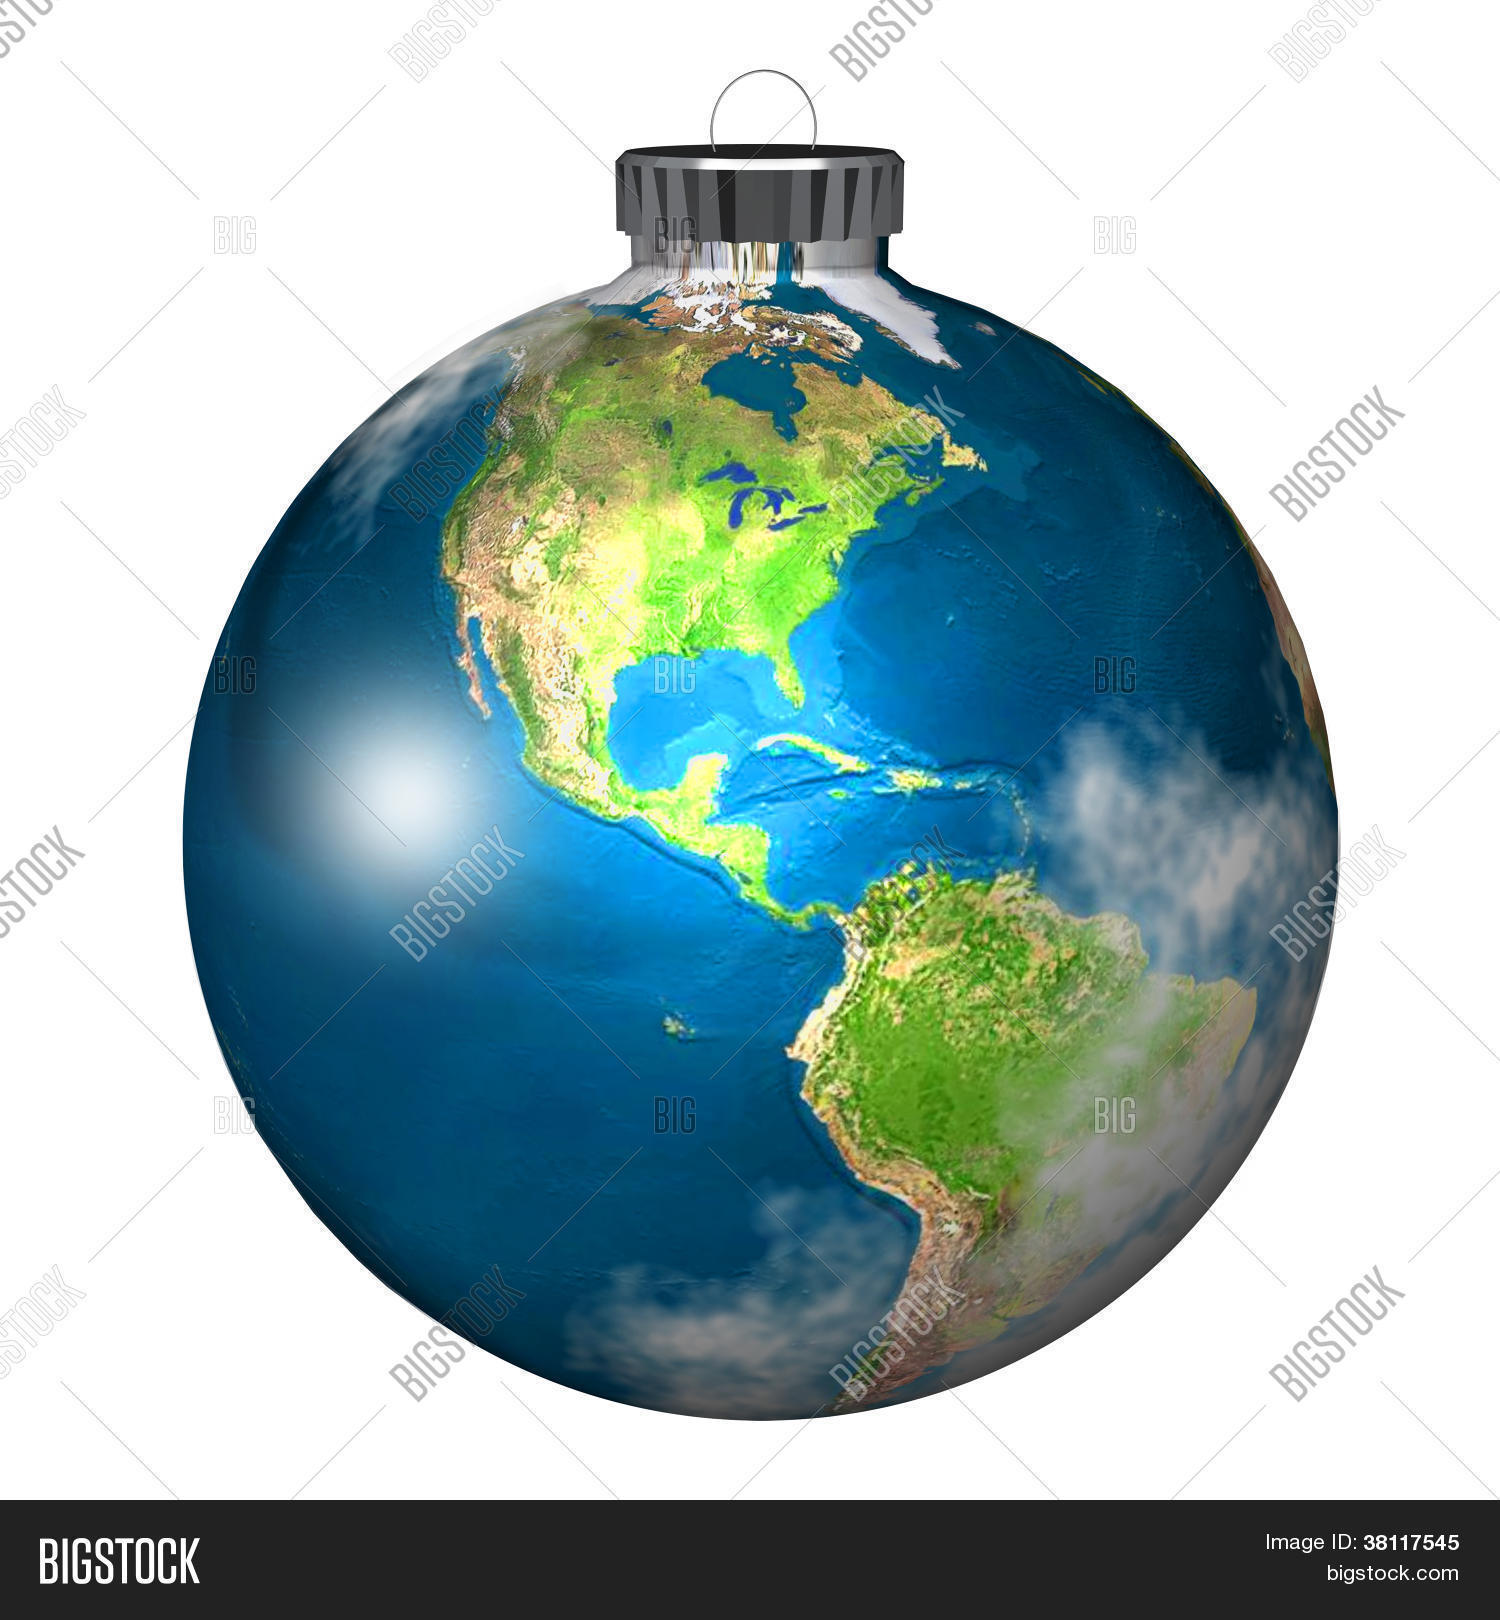 World globe christmas ornaments - Christmas Tree Bulb Ornament As Planet Earth On White Background